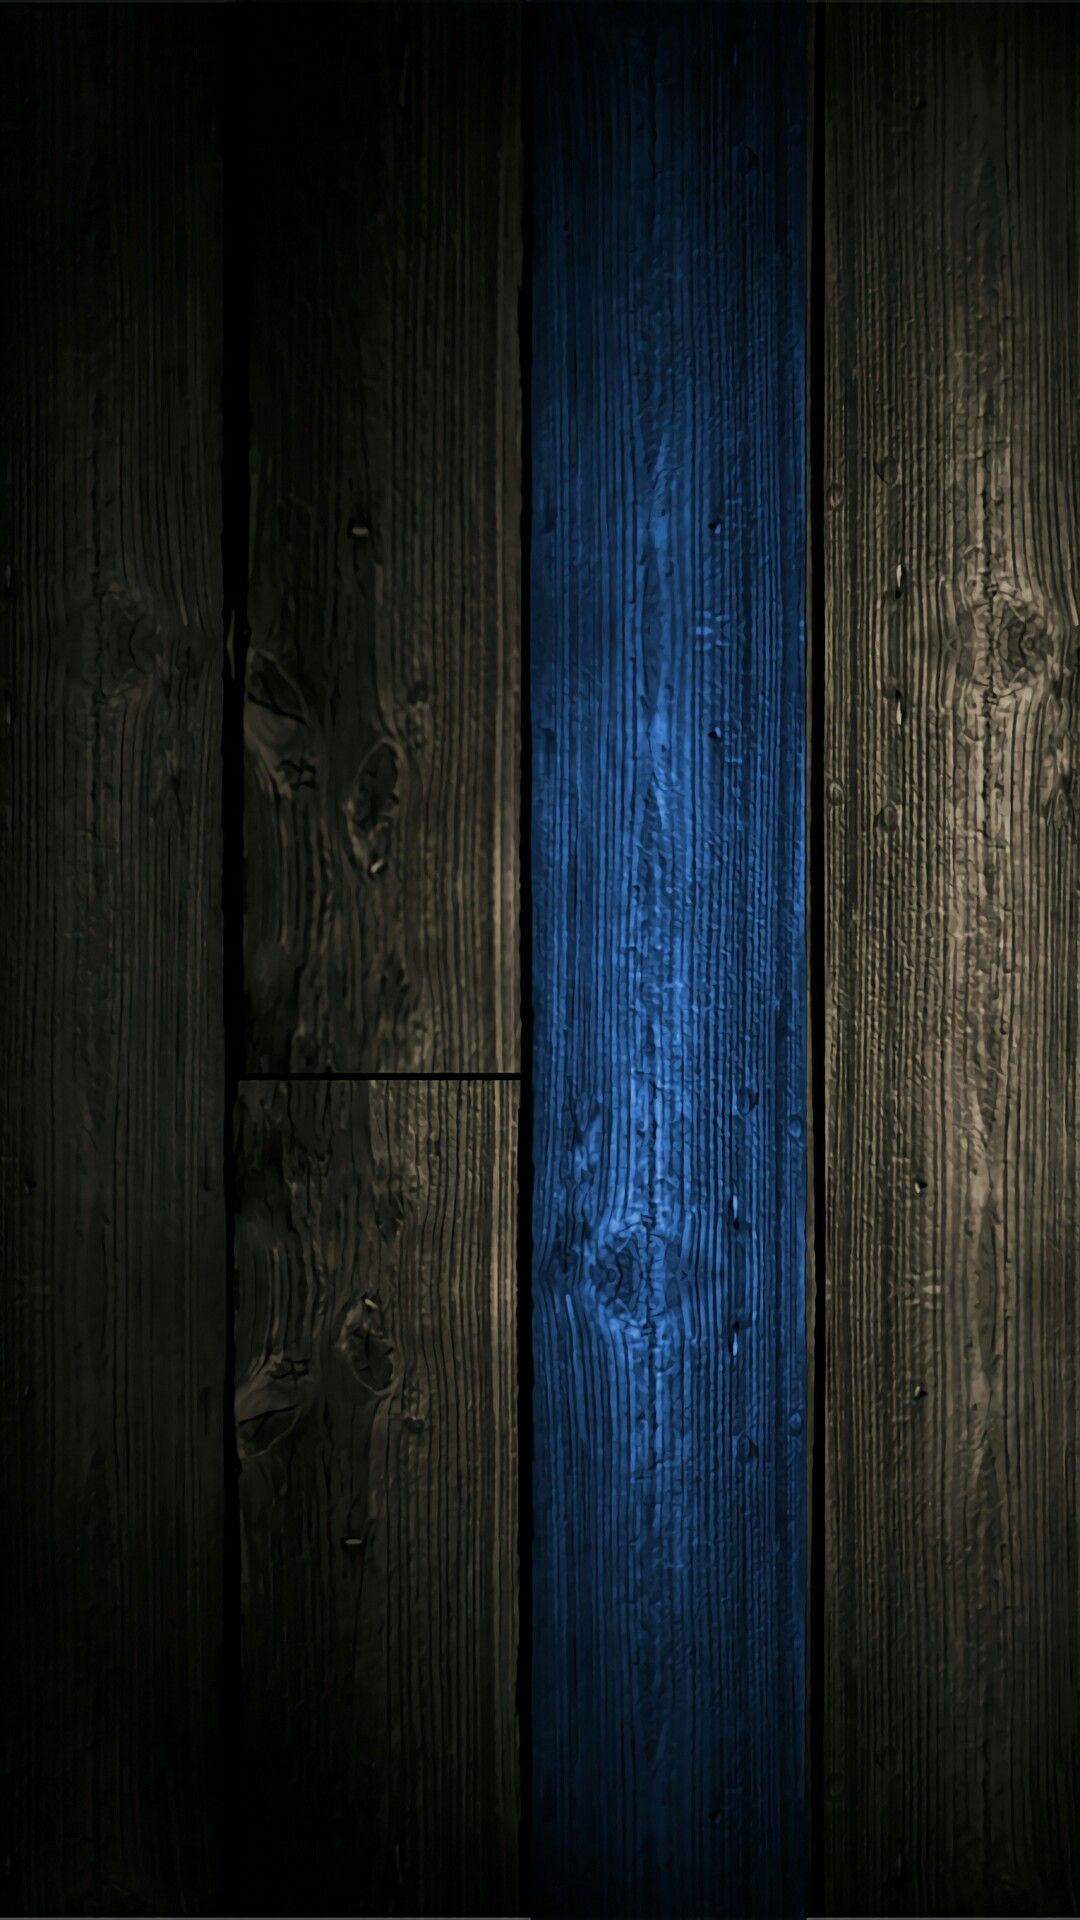 Iphone Wood Wallpapers Hd From Play Google Com Wood Wallpaper Blue Wallpaper Iphone Thin Blue Line Wallpaper